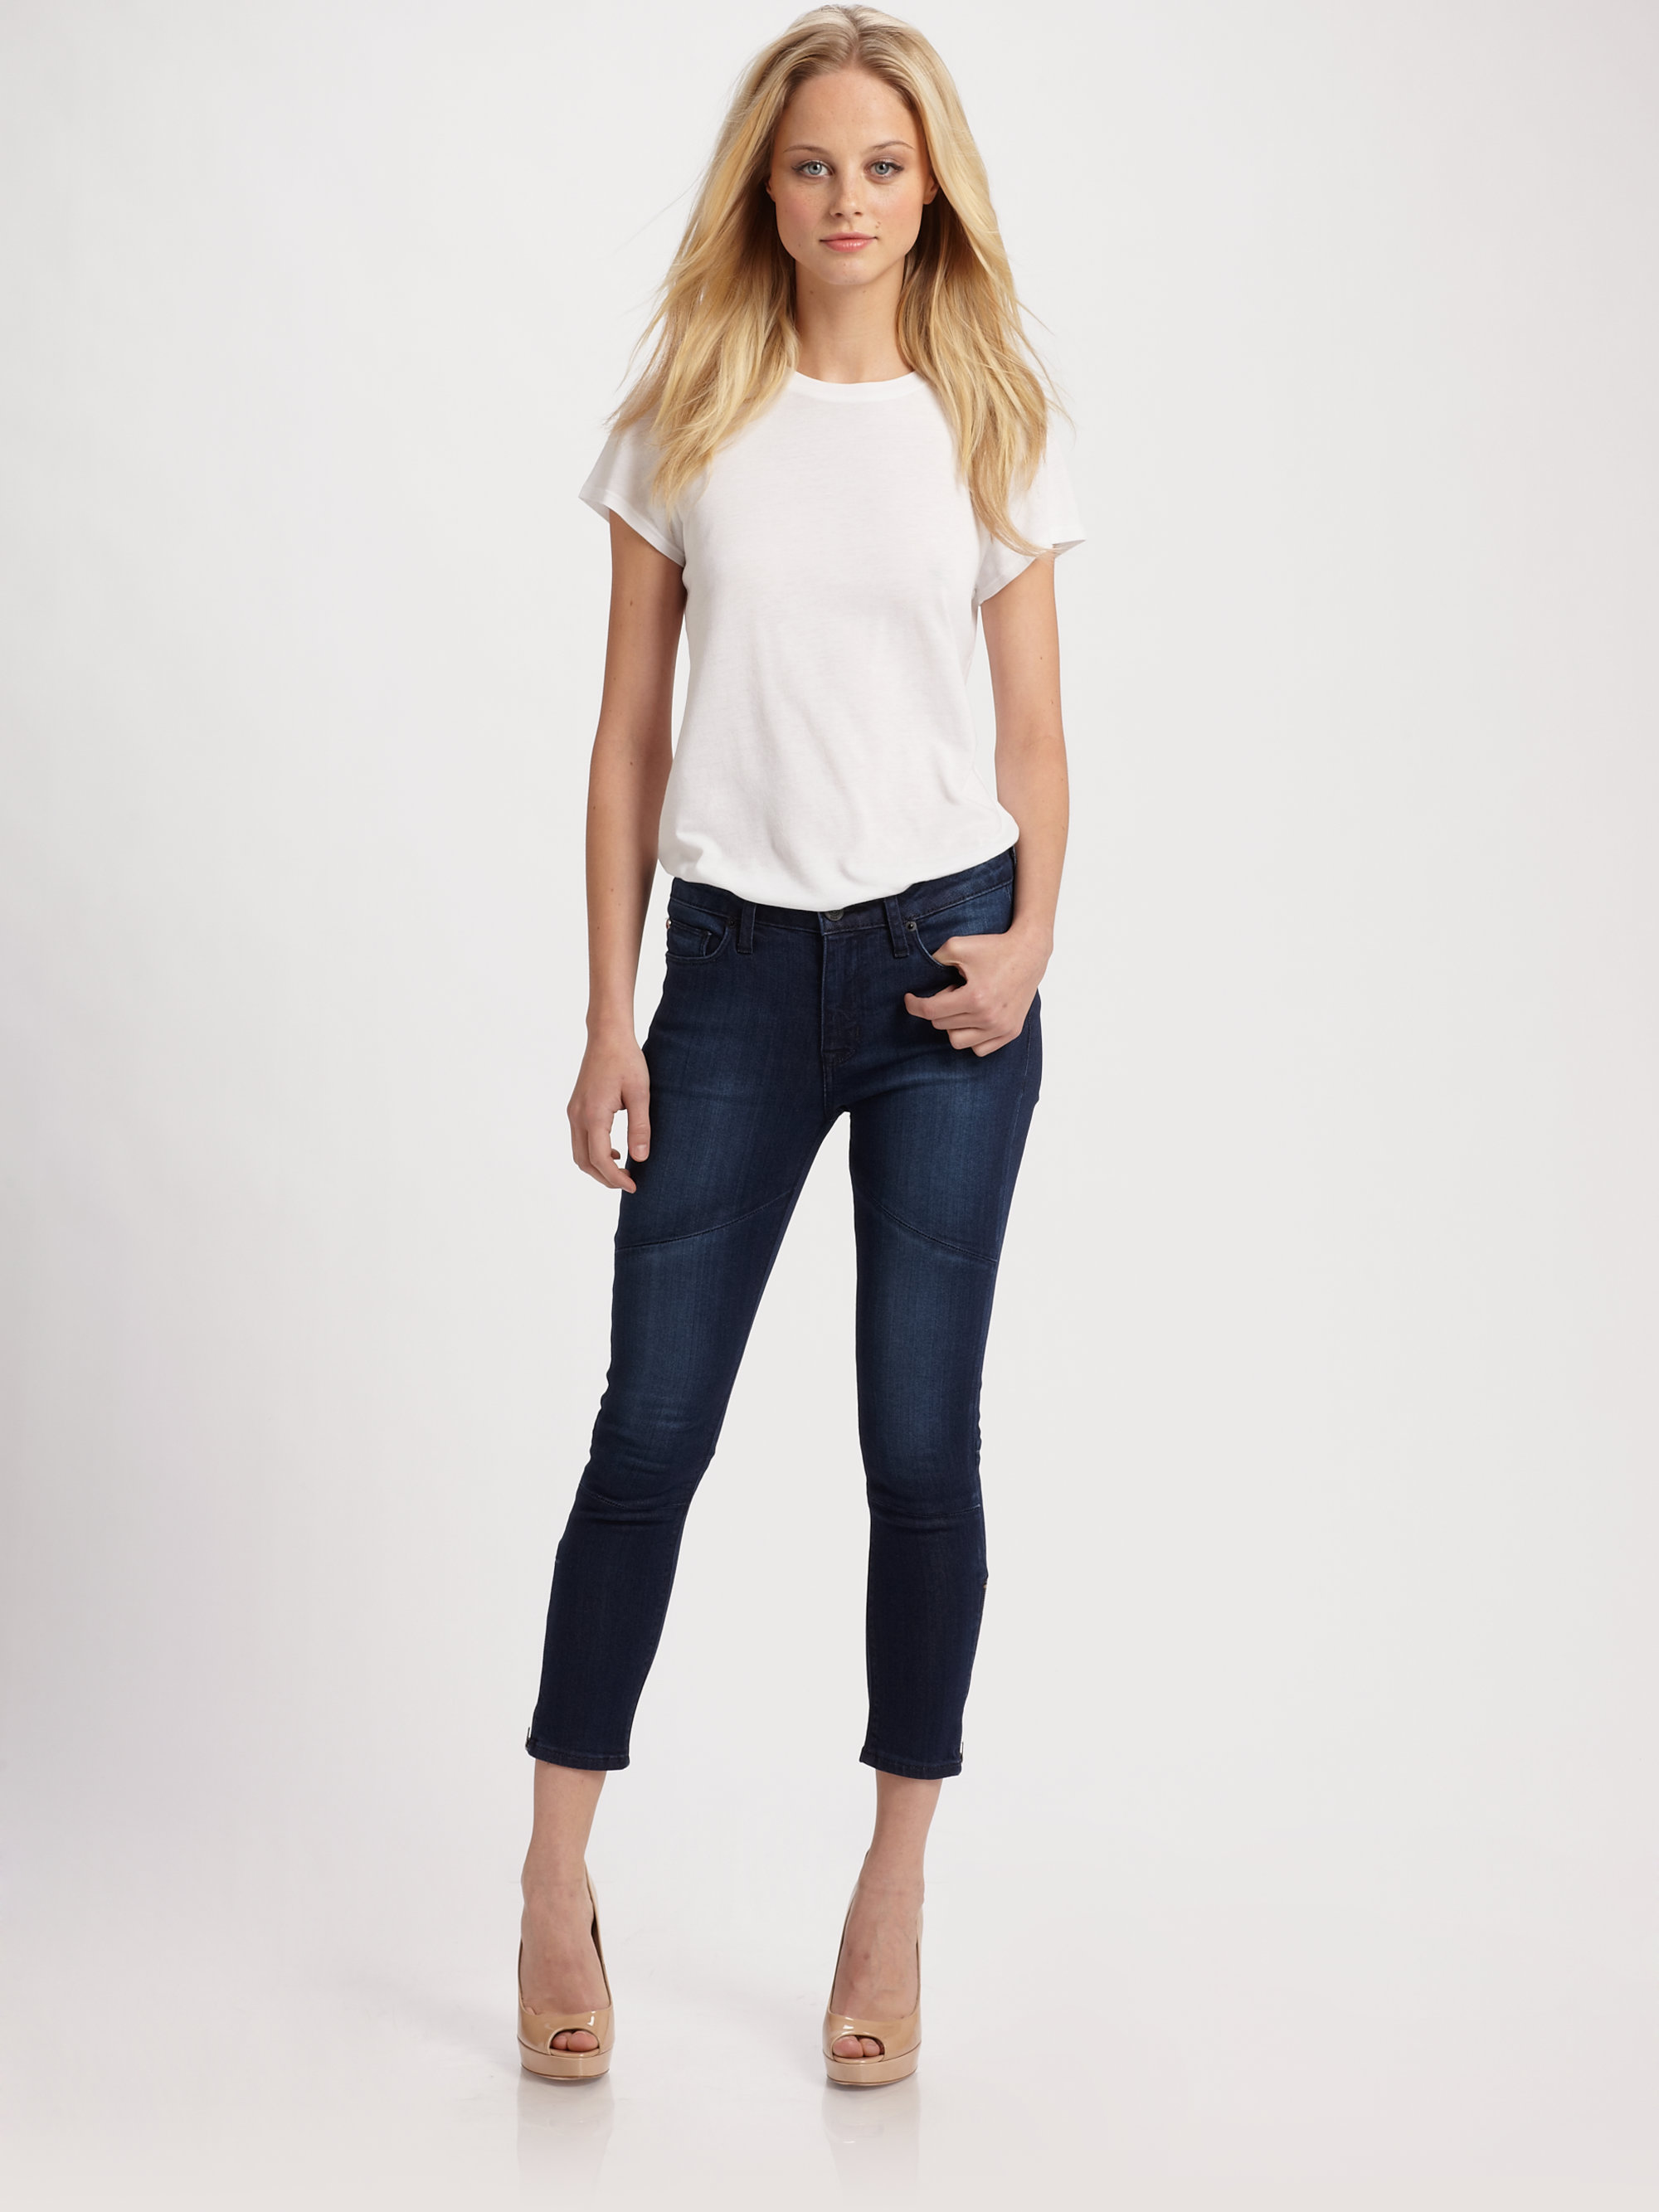 Hudson jeans Rider Cropped Skinny Jeans in Blue | Lyst